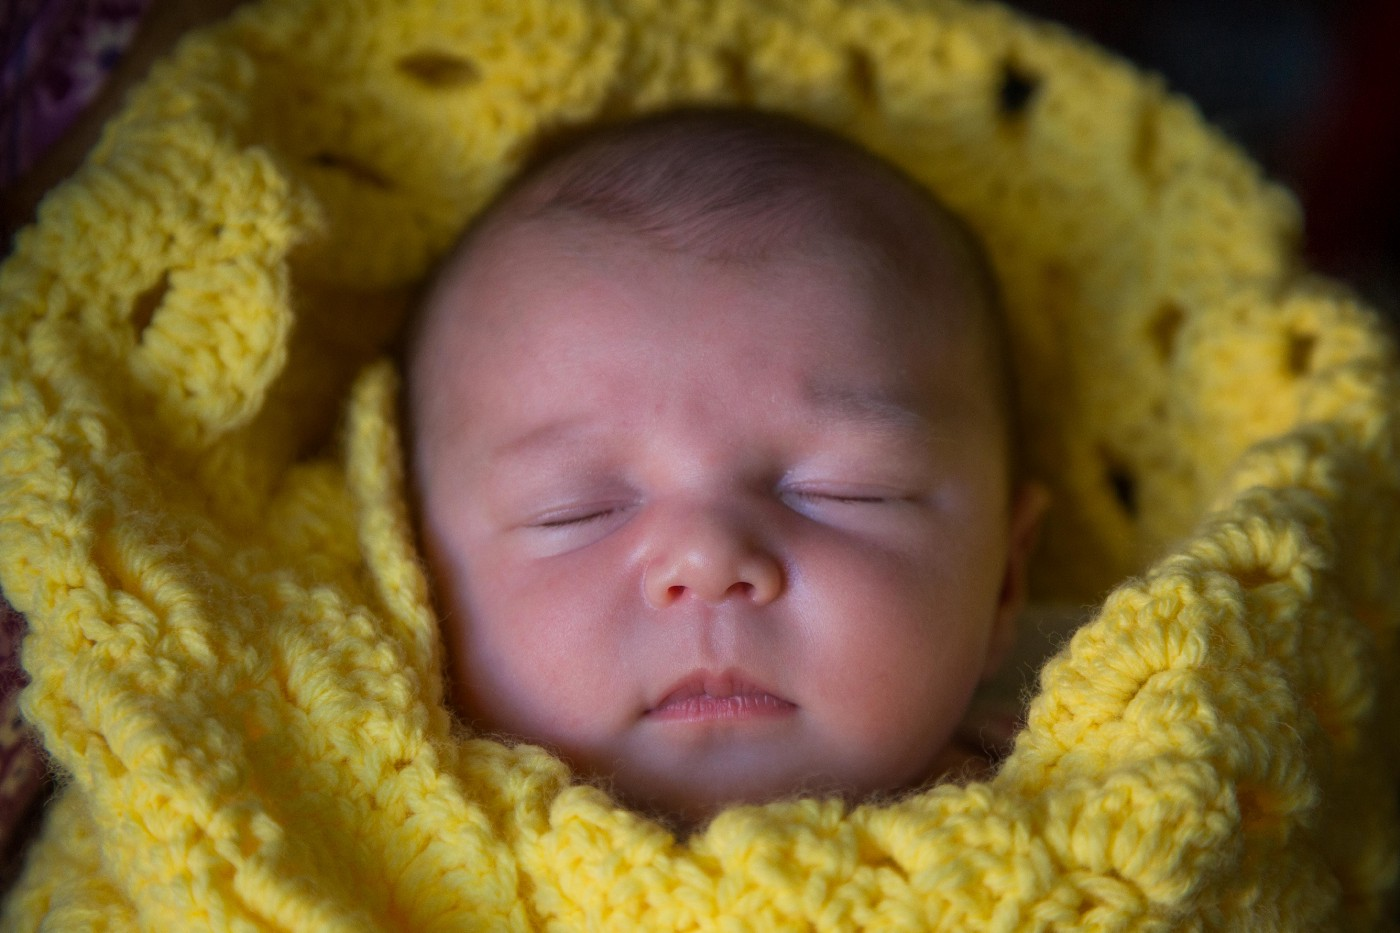 Invincible Summer—a personal photo of the author's daughter shortly after she was born, wrapped in a yellow blanket.